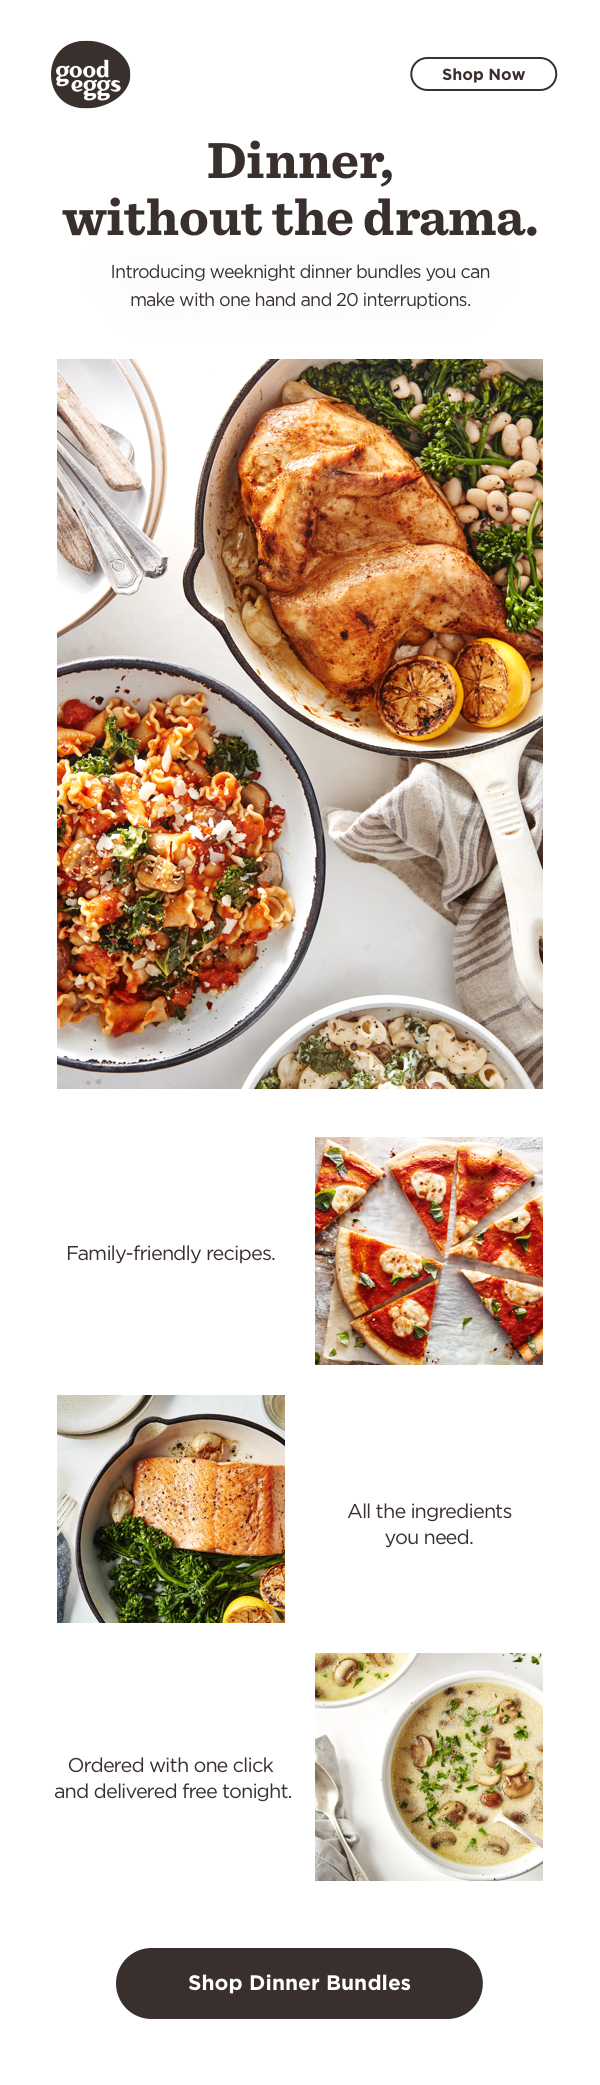 Product Launch   Copy, Strategy  This email launched Weeknight Dinner Bundles, a series of products aimed at solving dinner for our customers.